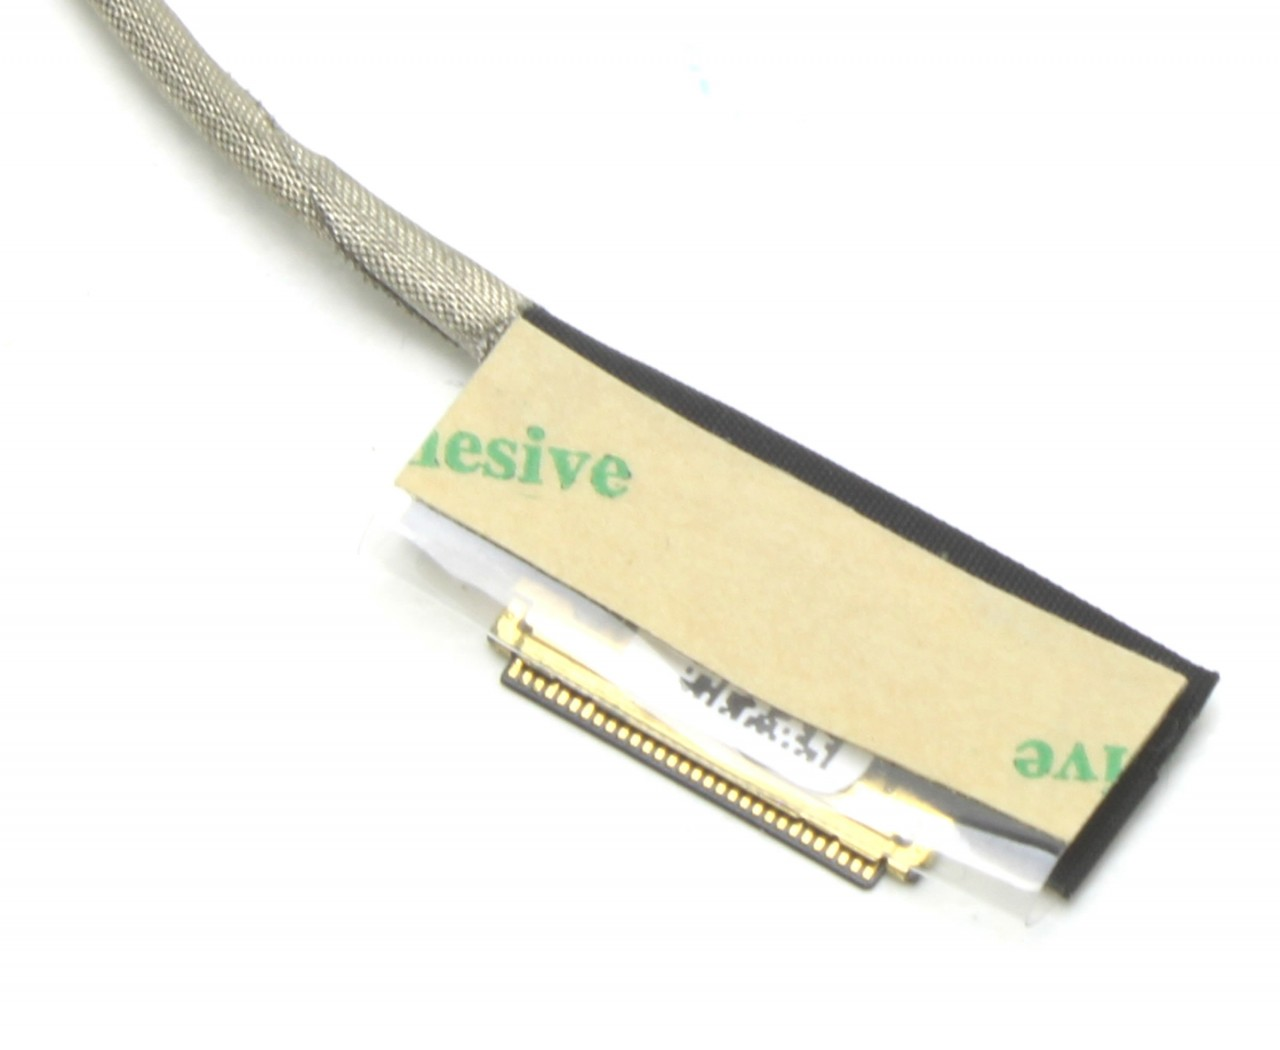 Cablu video LVDS Acer Aspire E5 511G cu touchscreen imagine powerlaptop.ro 2021